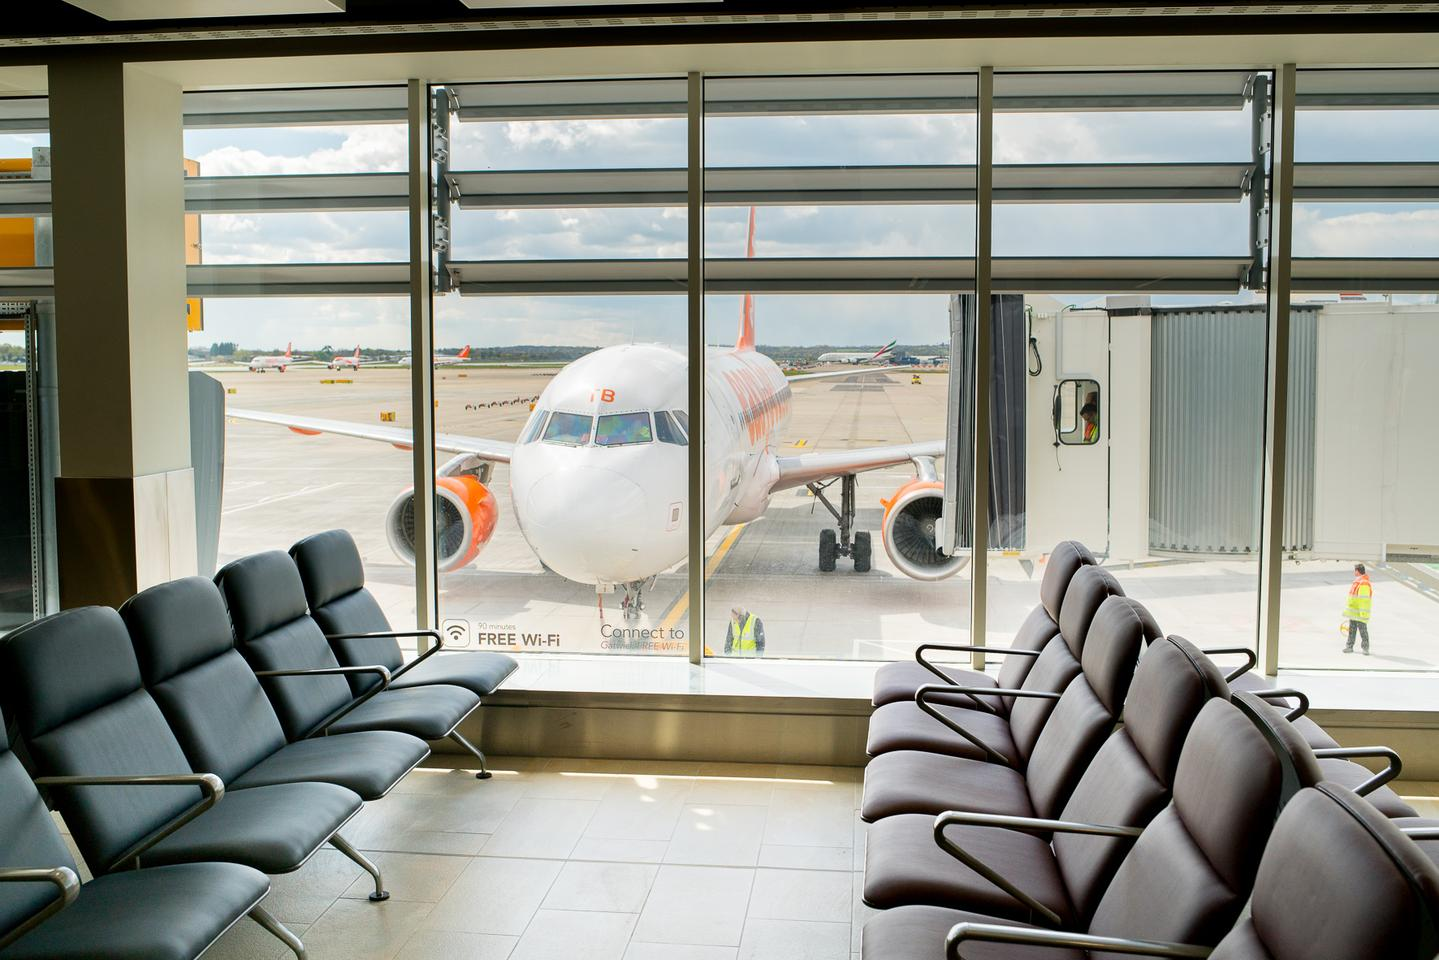 New boarding procedures will be tested for two months at Gatwick Airport